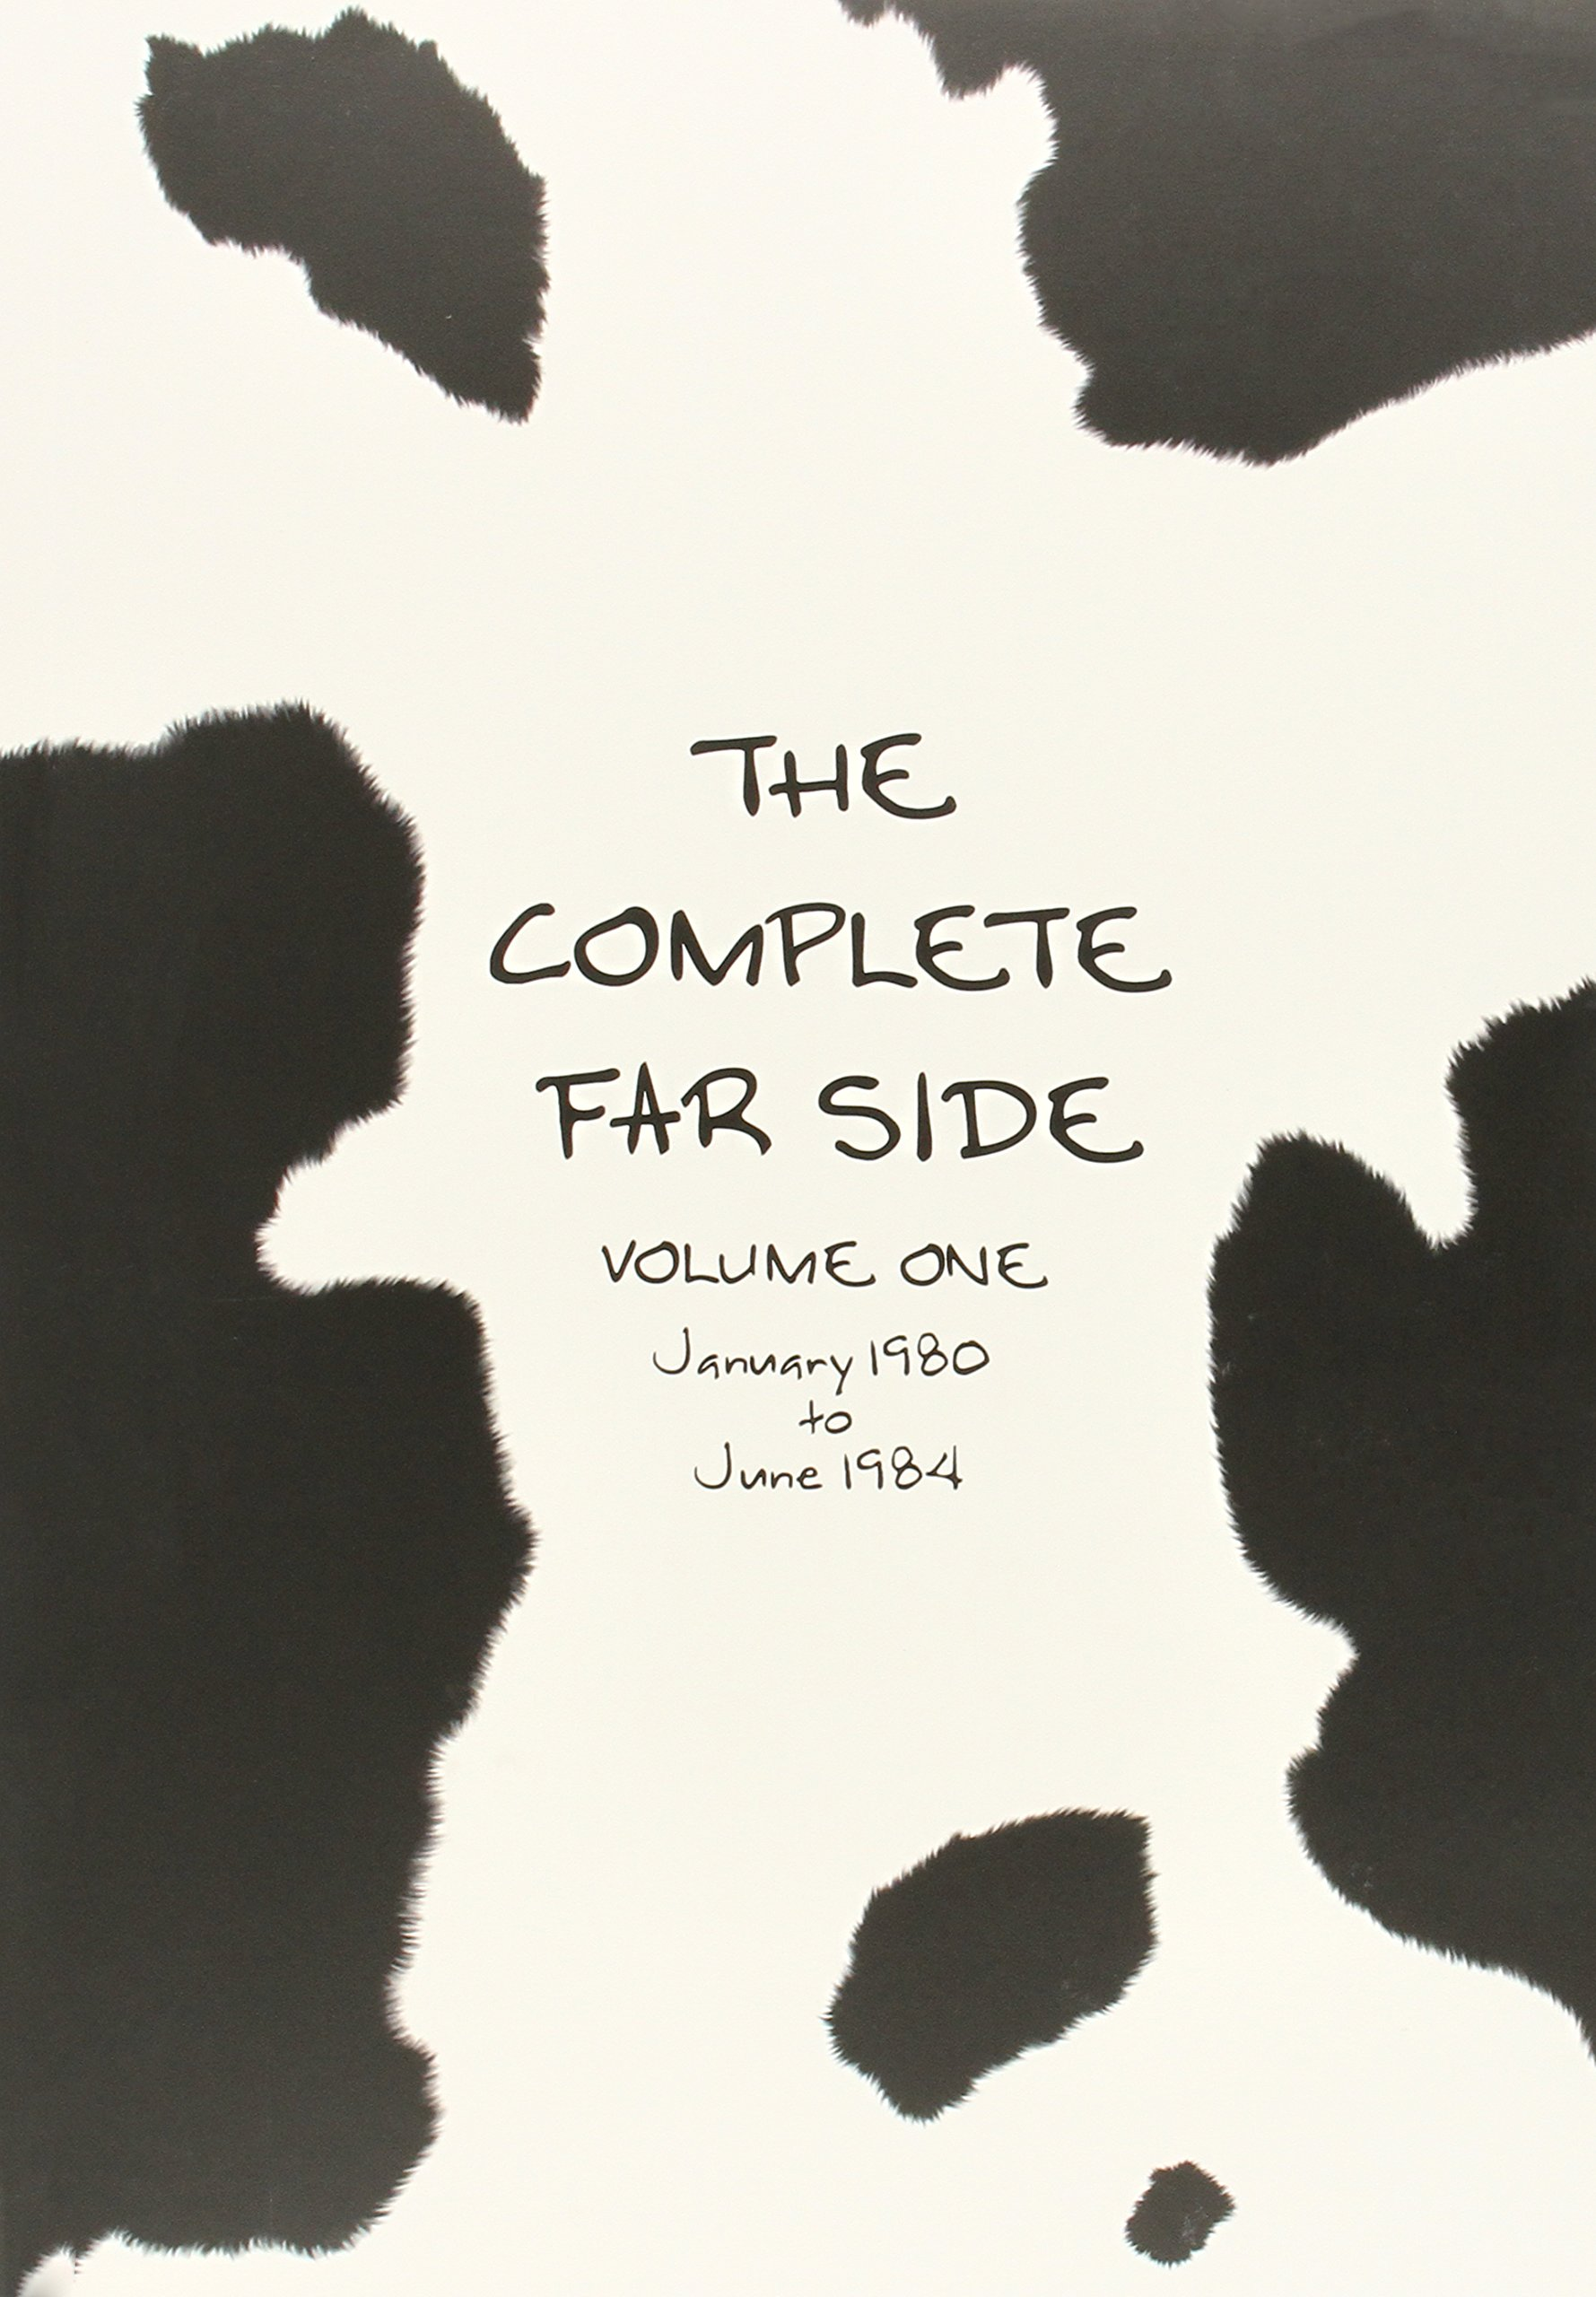 THE COMPLETE FAR SIDE DOWNLOAD